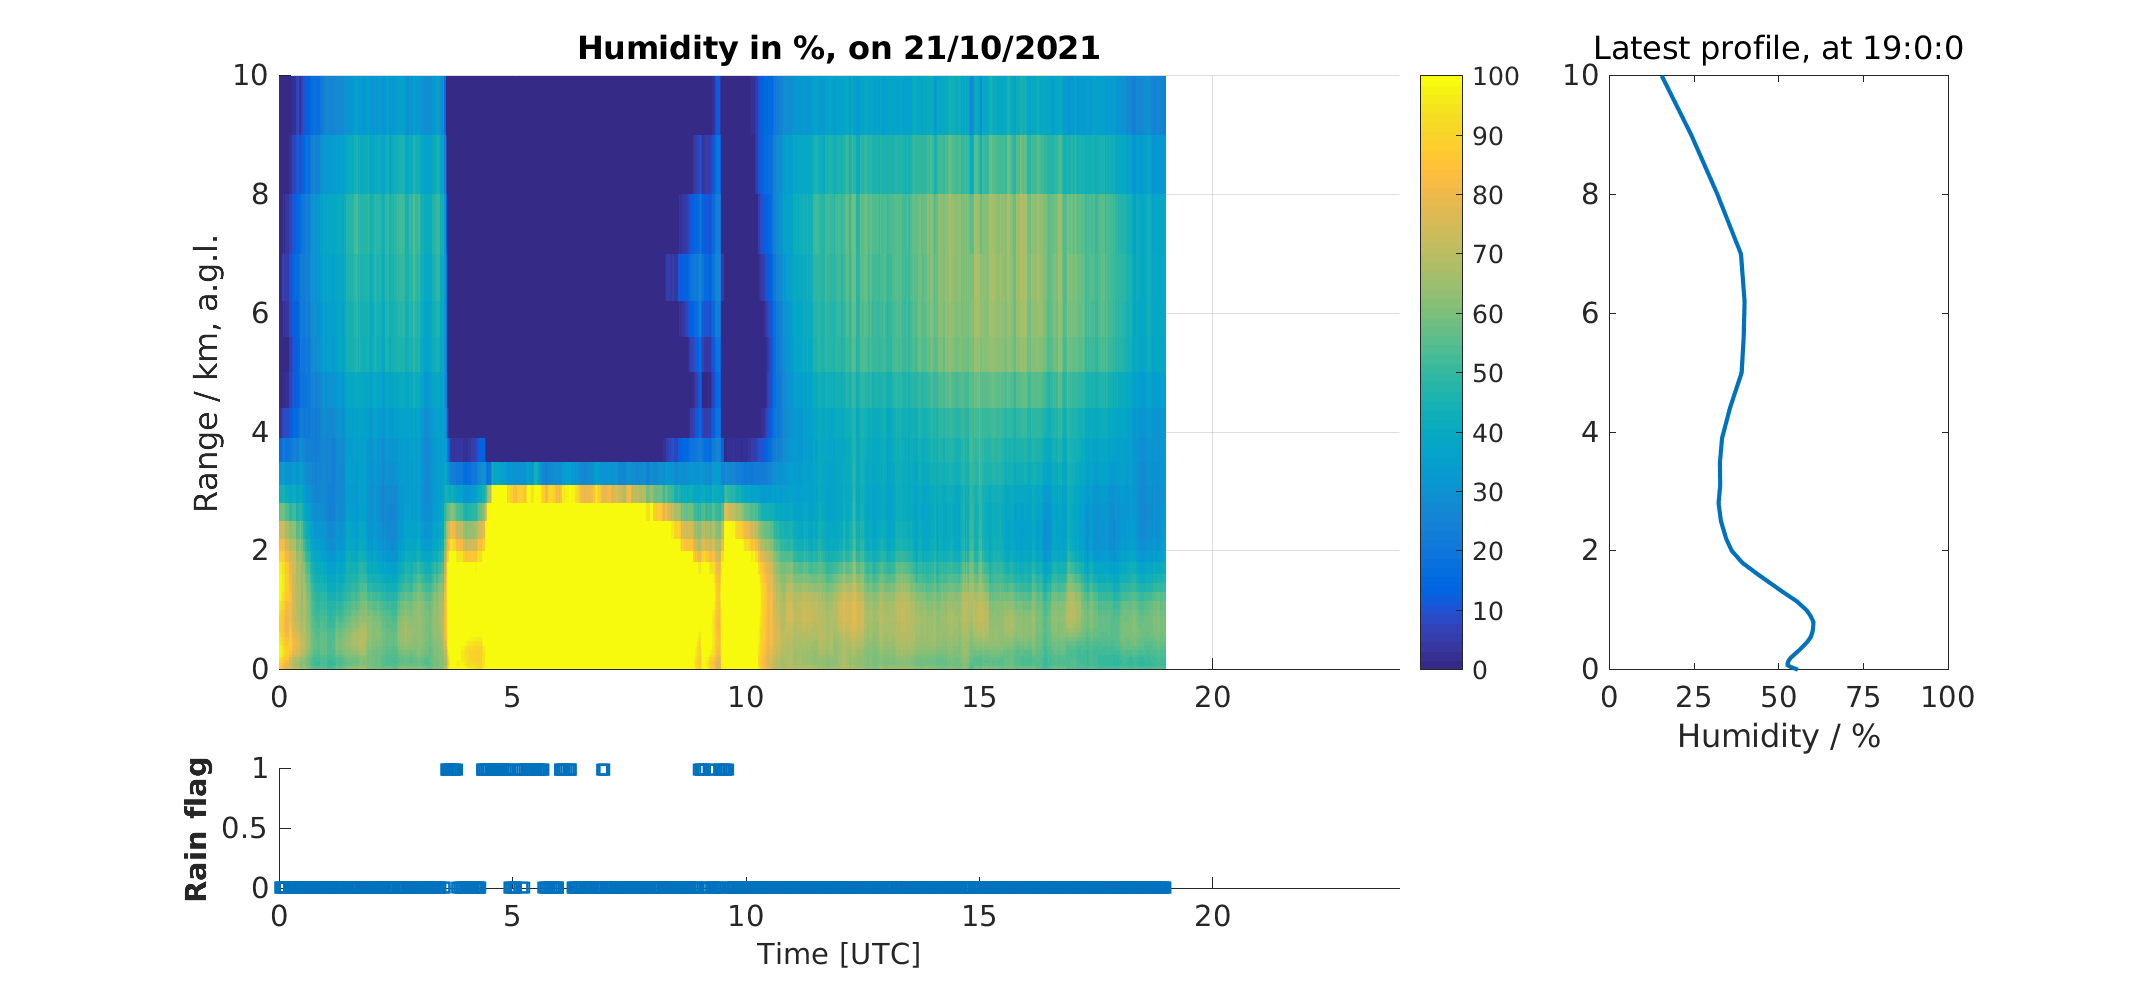 No HATPRO humidity data available